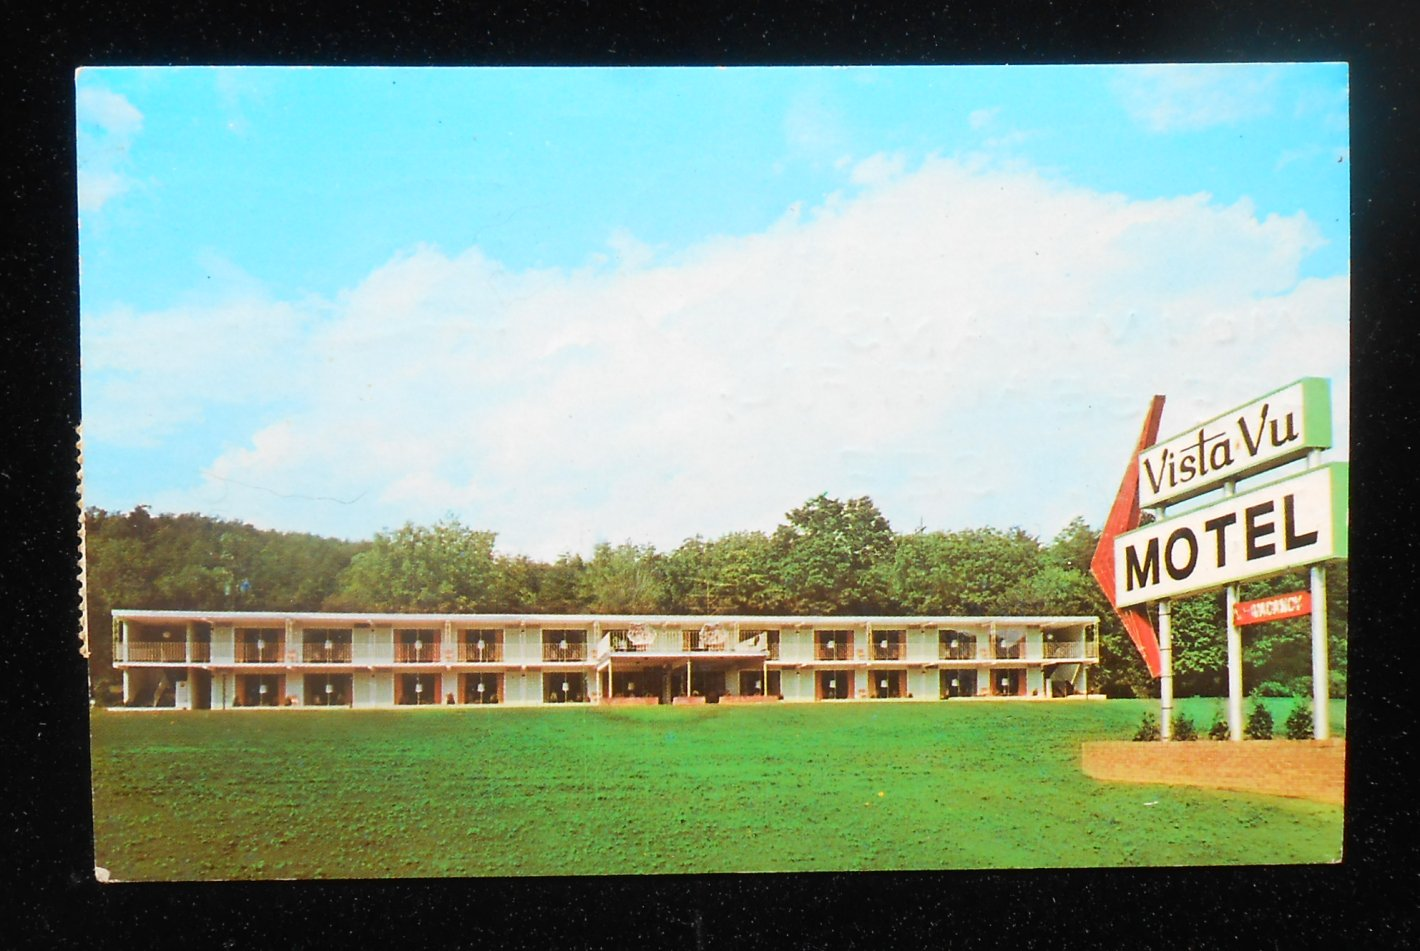 1967 vista vu motel route 22 glenn i fry no swimming pool huntingdon pa pc ebay Huntingdon swimming pool timetable